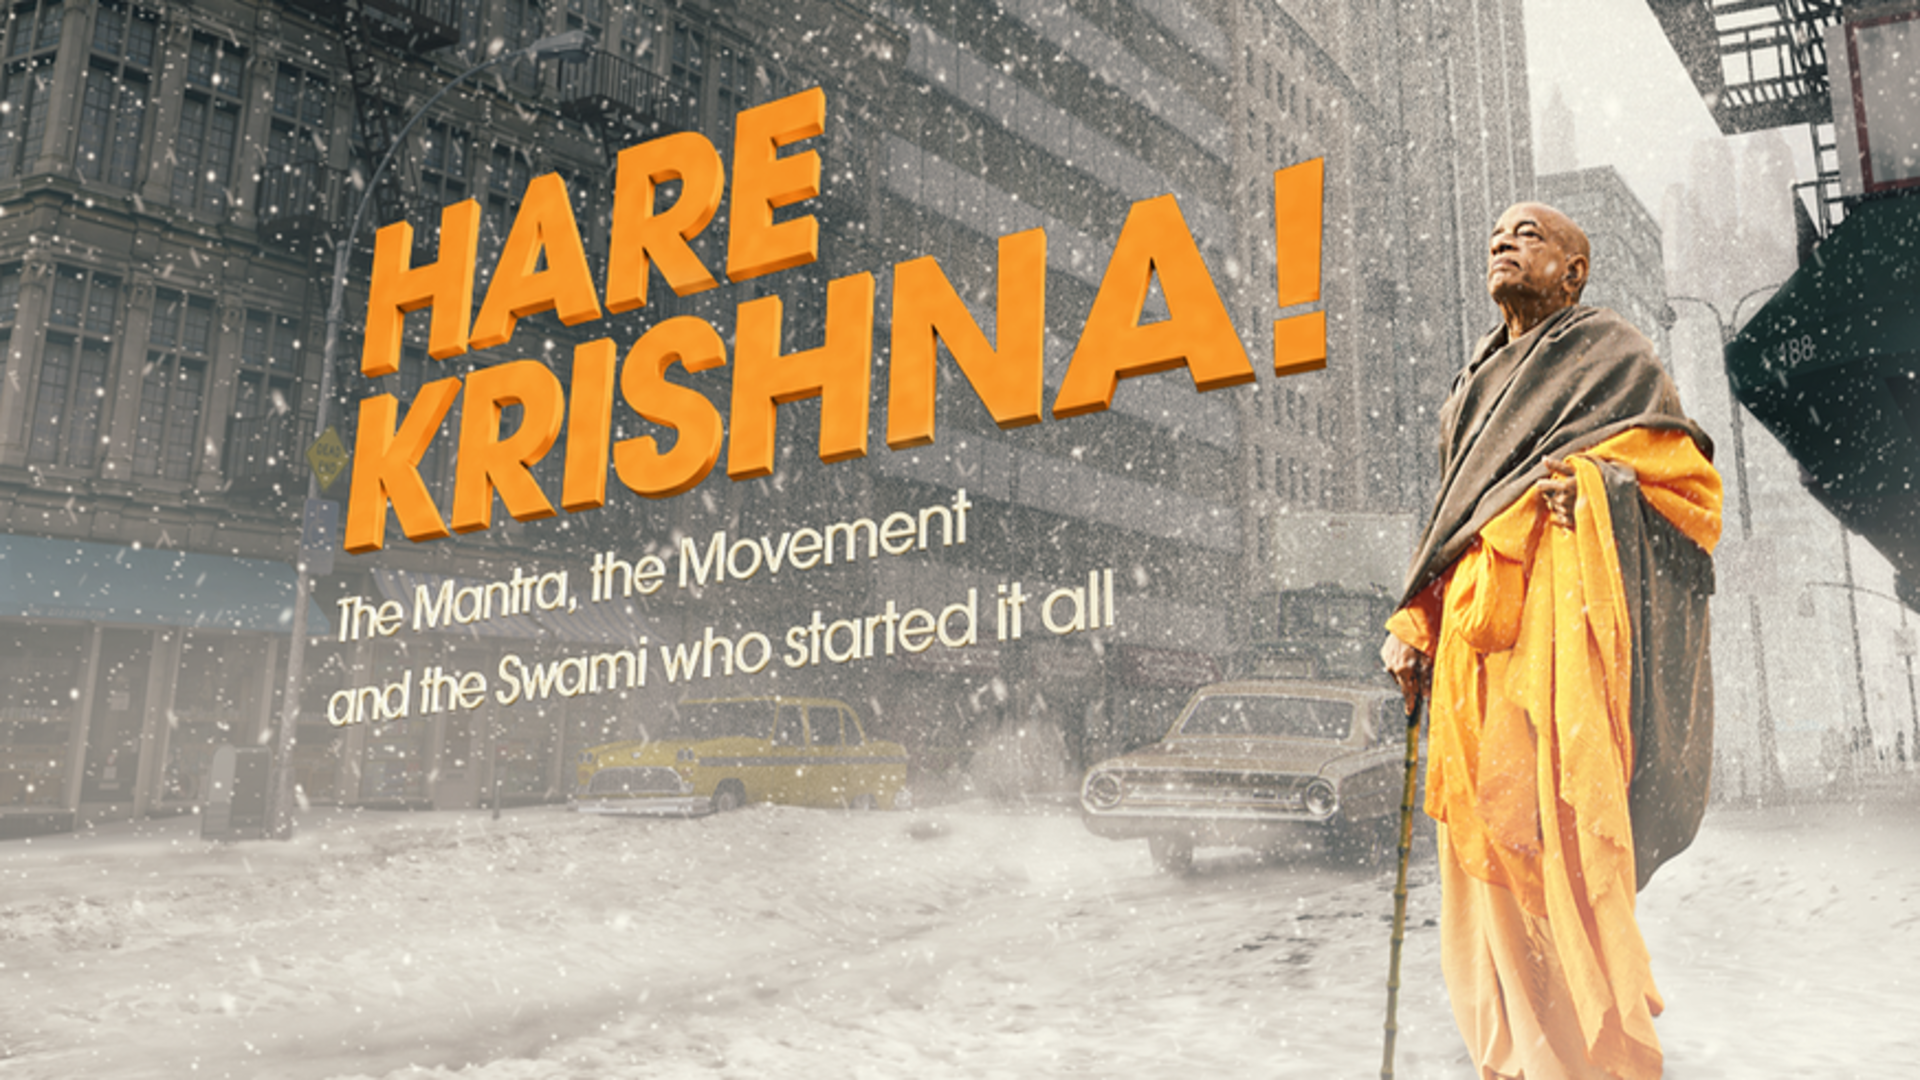 Hare Krishna! The Mantra, the Movement, and the Swami Who Started It All